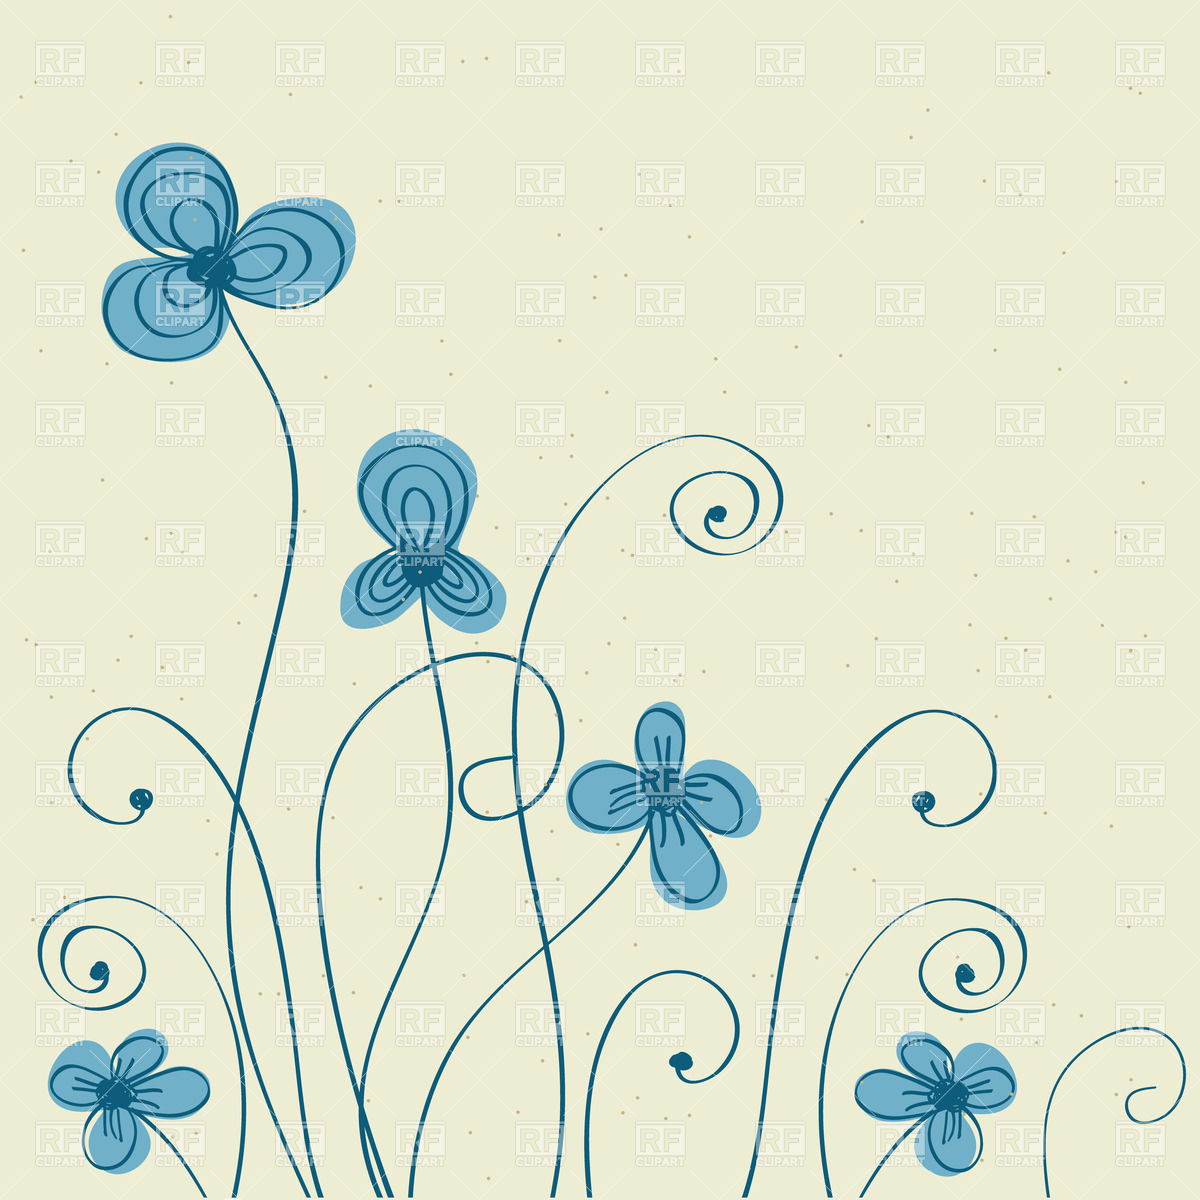 Blue Flower clipart drawing Pinterest Lettering draw Search flowers